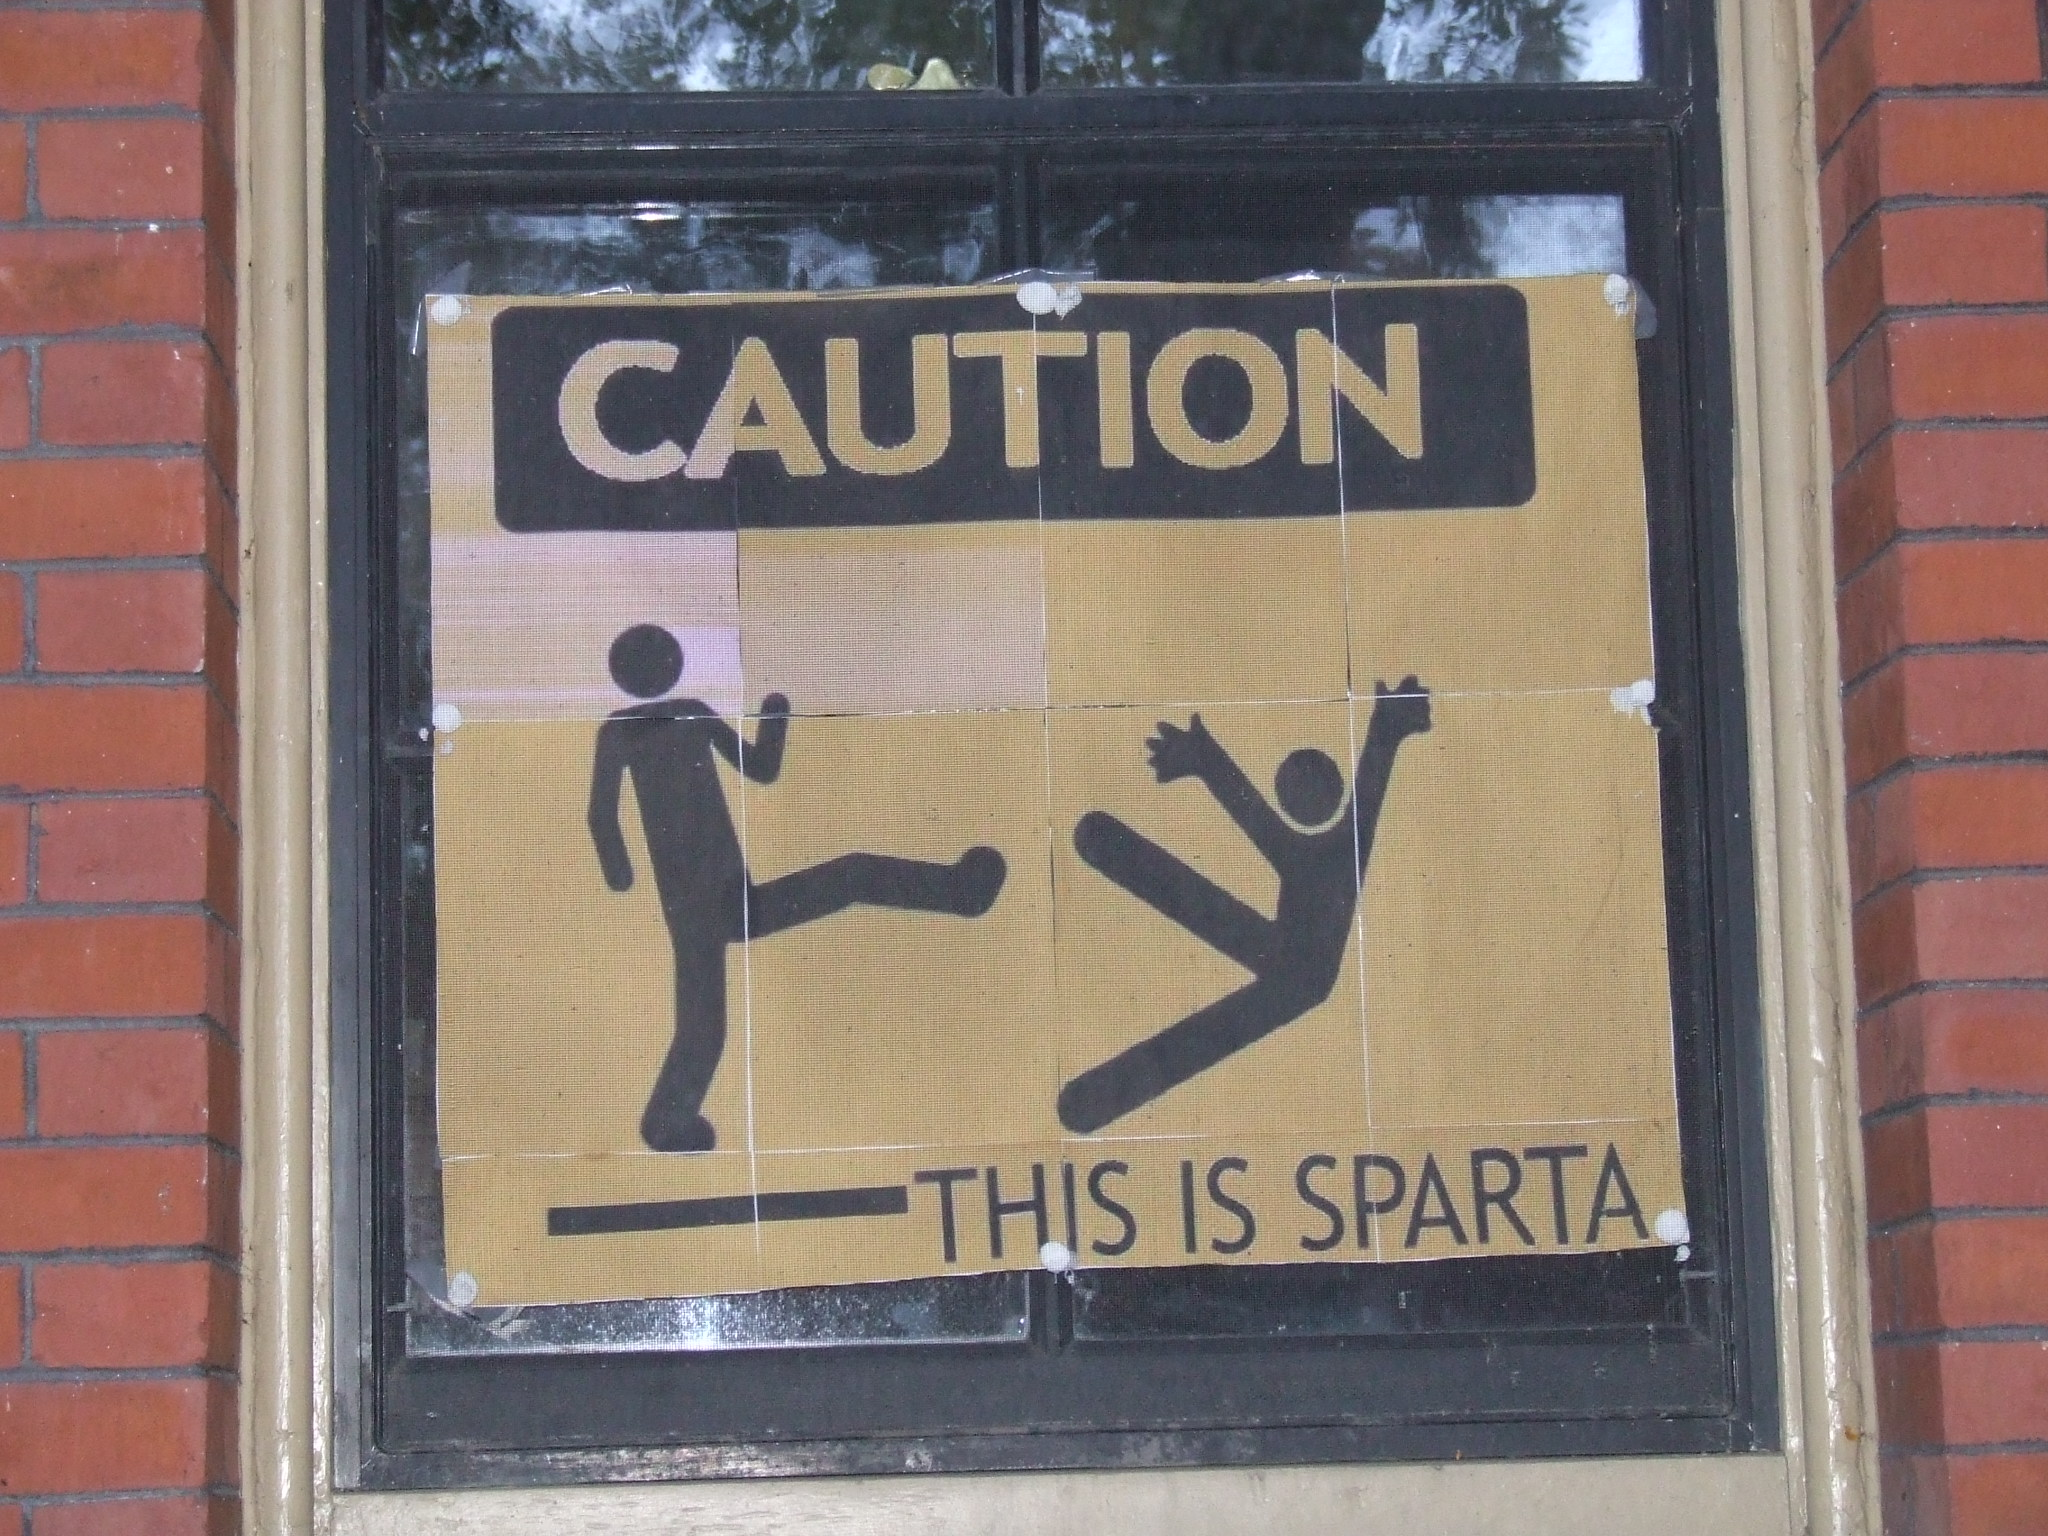 Stick figure kicking another stick figure with caption 'This is Sparta'